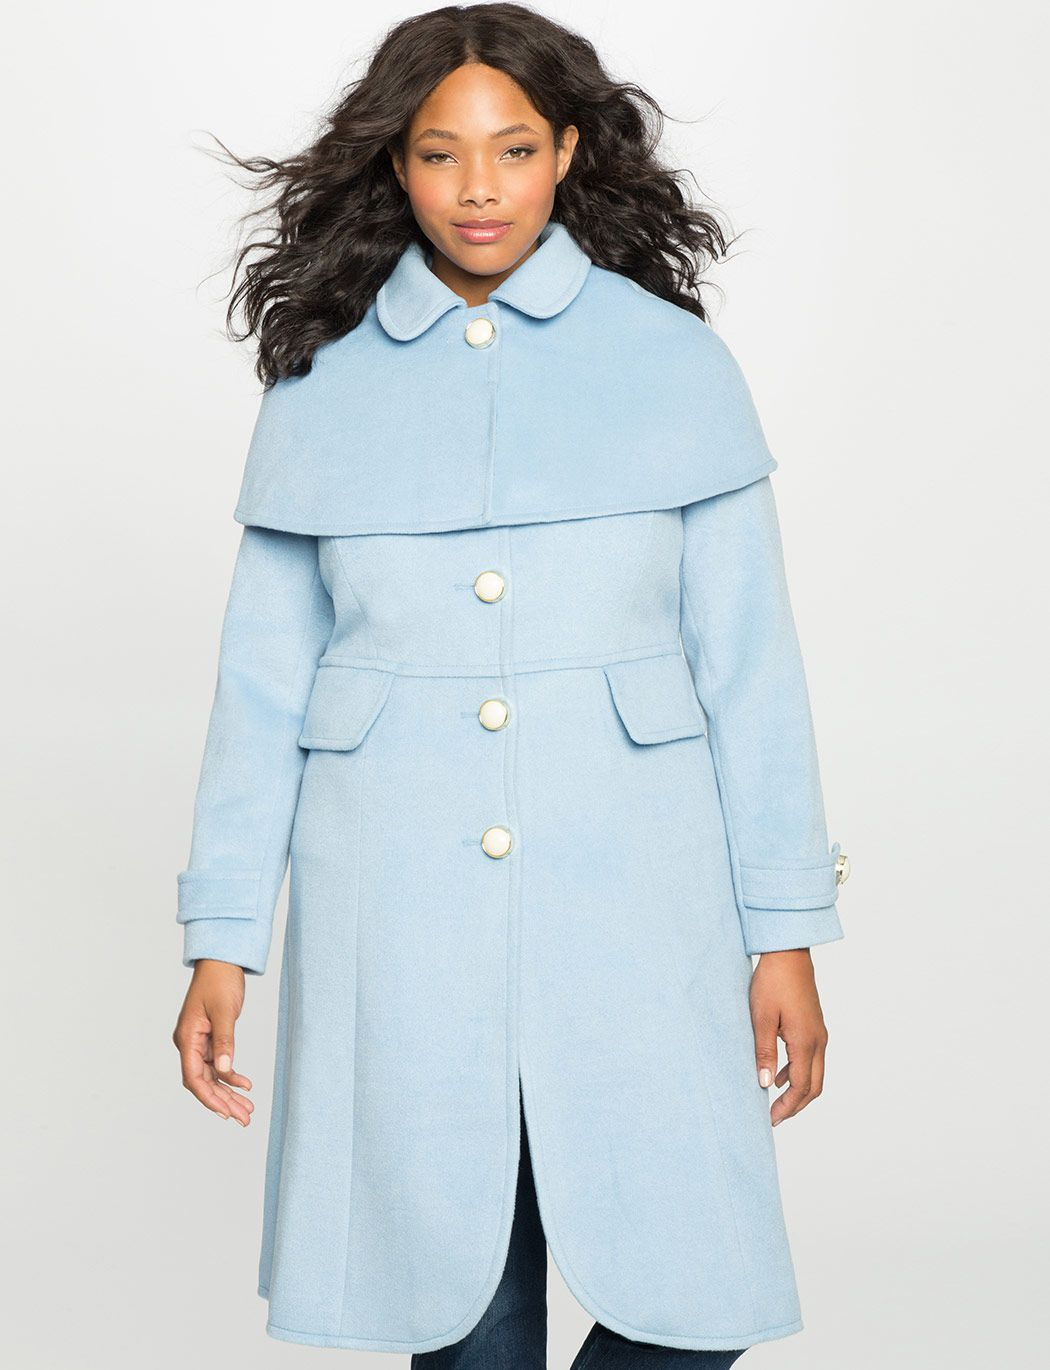 fc2fc6bf14e 19 Designer Coats to Make a Statement This Winter